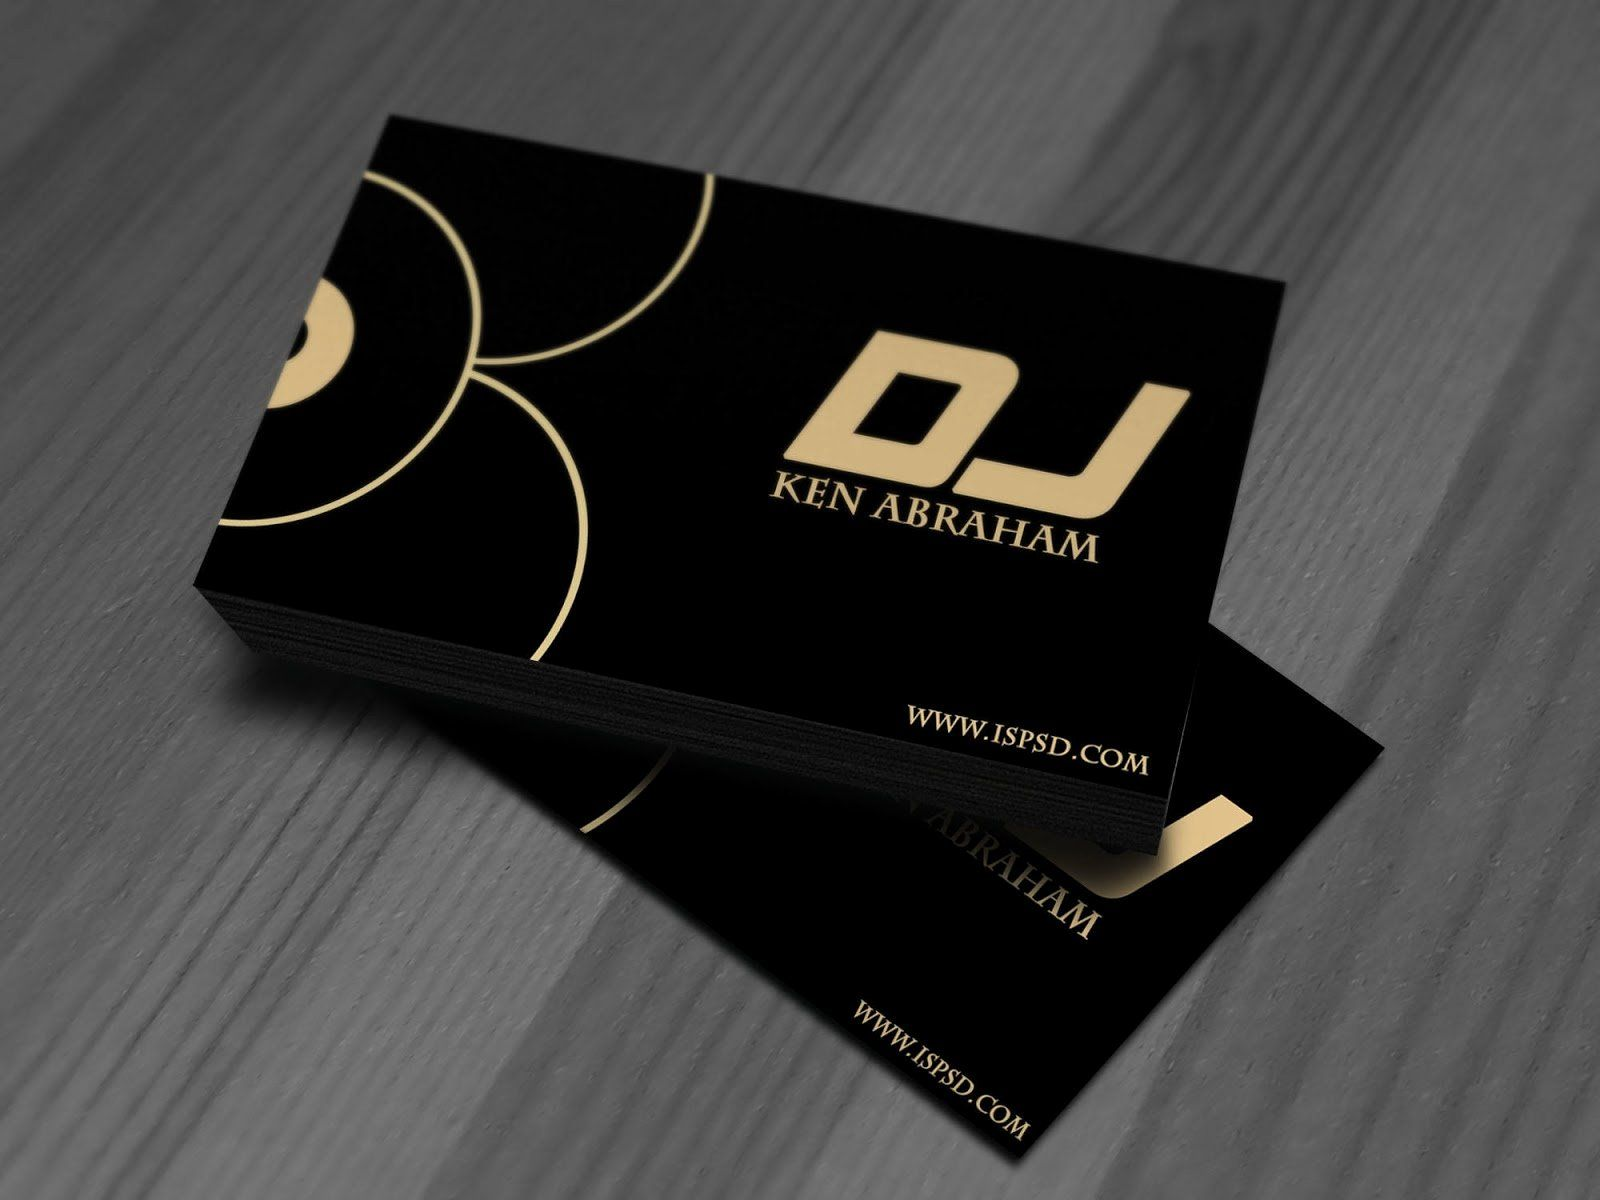 Music Business Card Template Unique Music Business Cards Business Card Tips Music Business Cards Free Business Card Templates Dj Business Cards